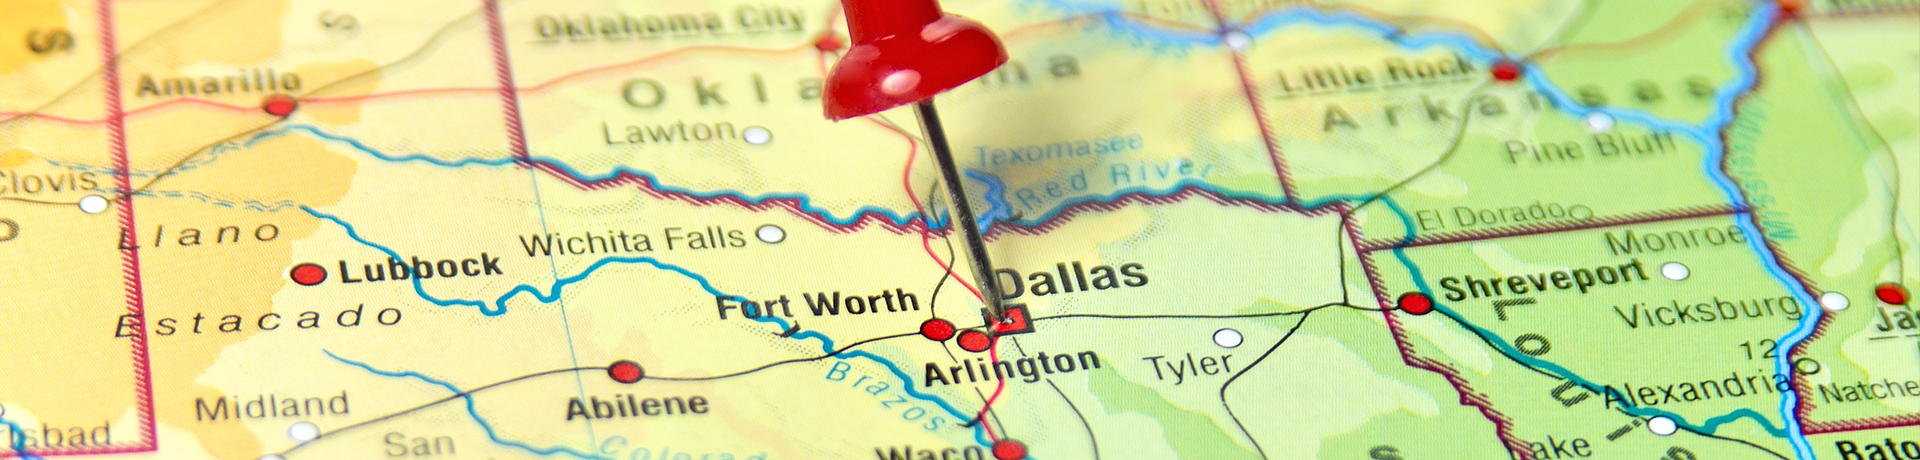 dallas pin on map